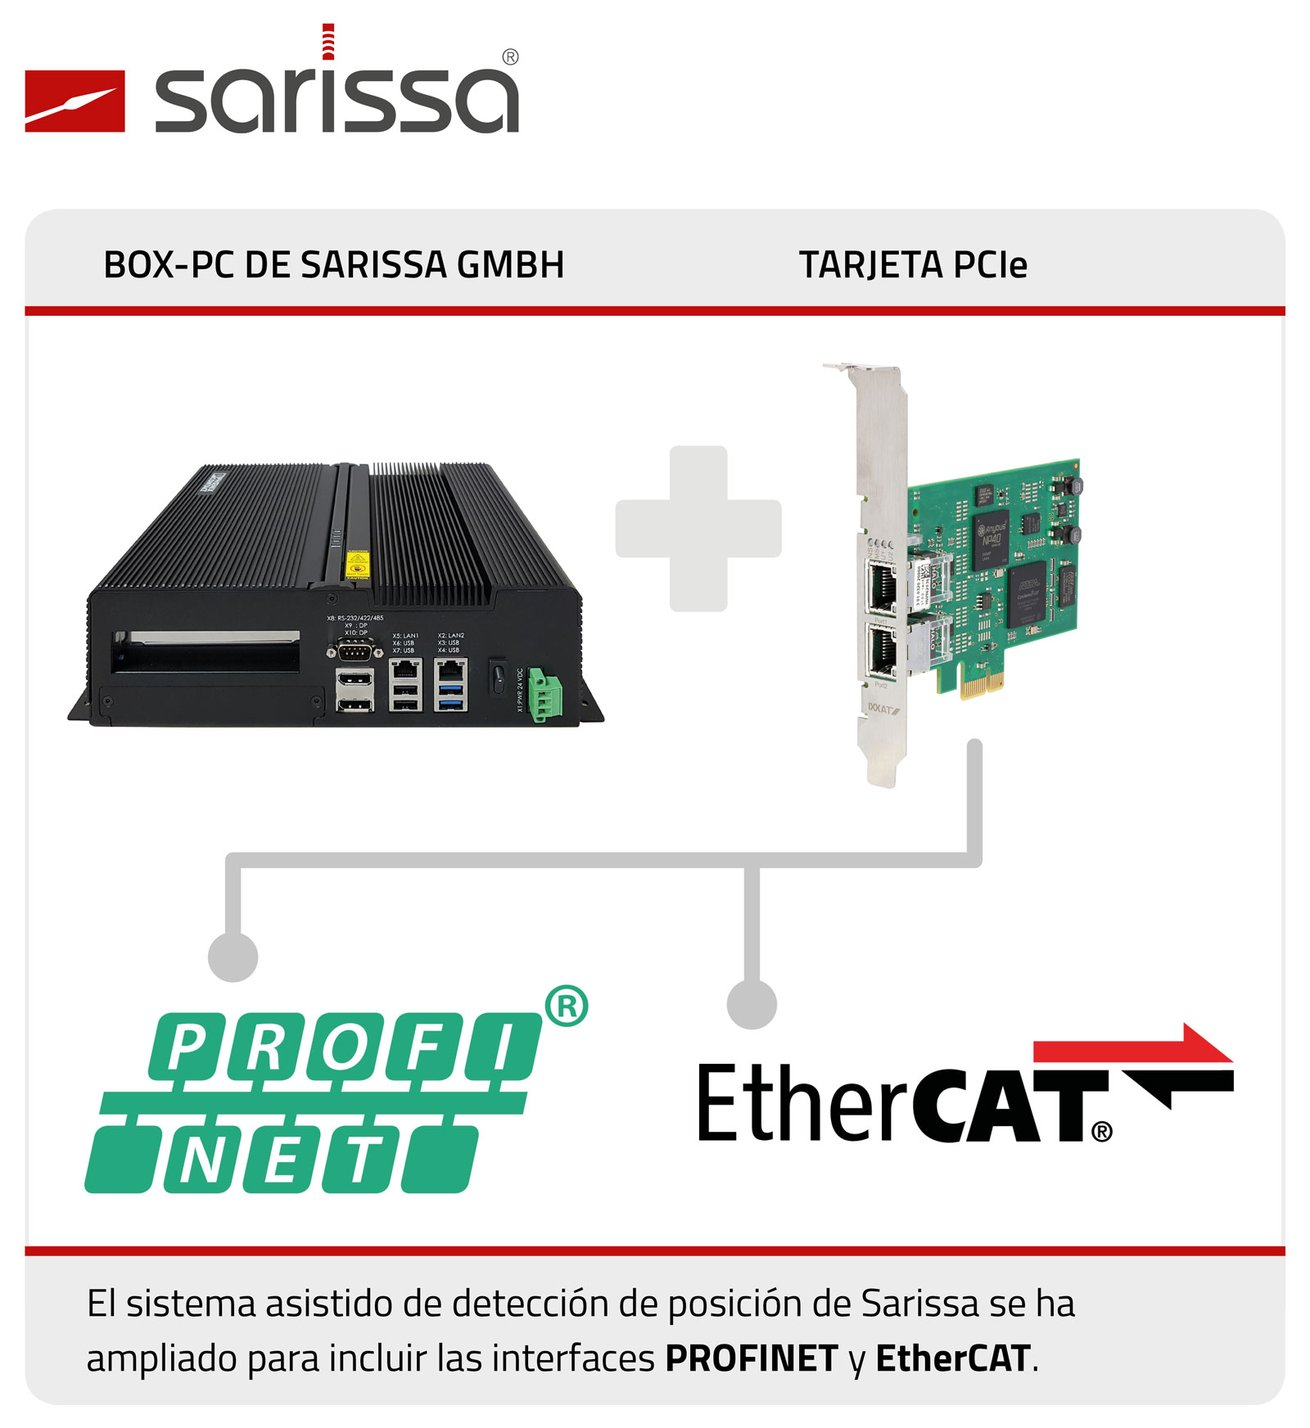 Sarissa interfaces